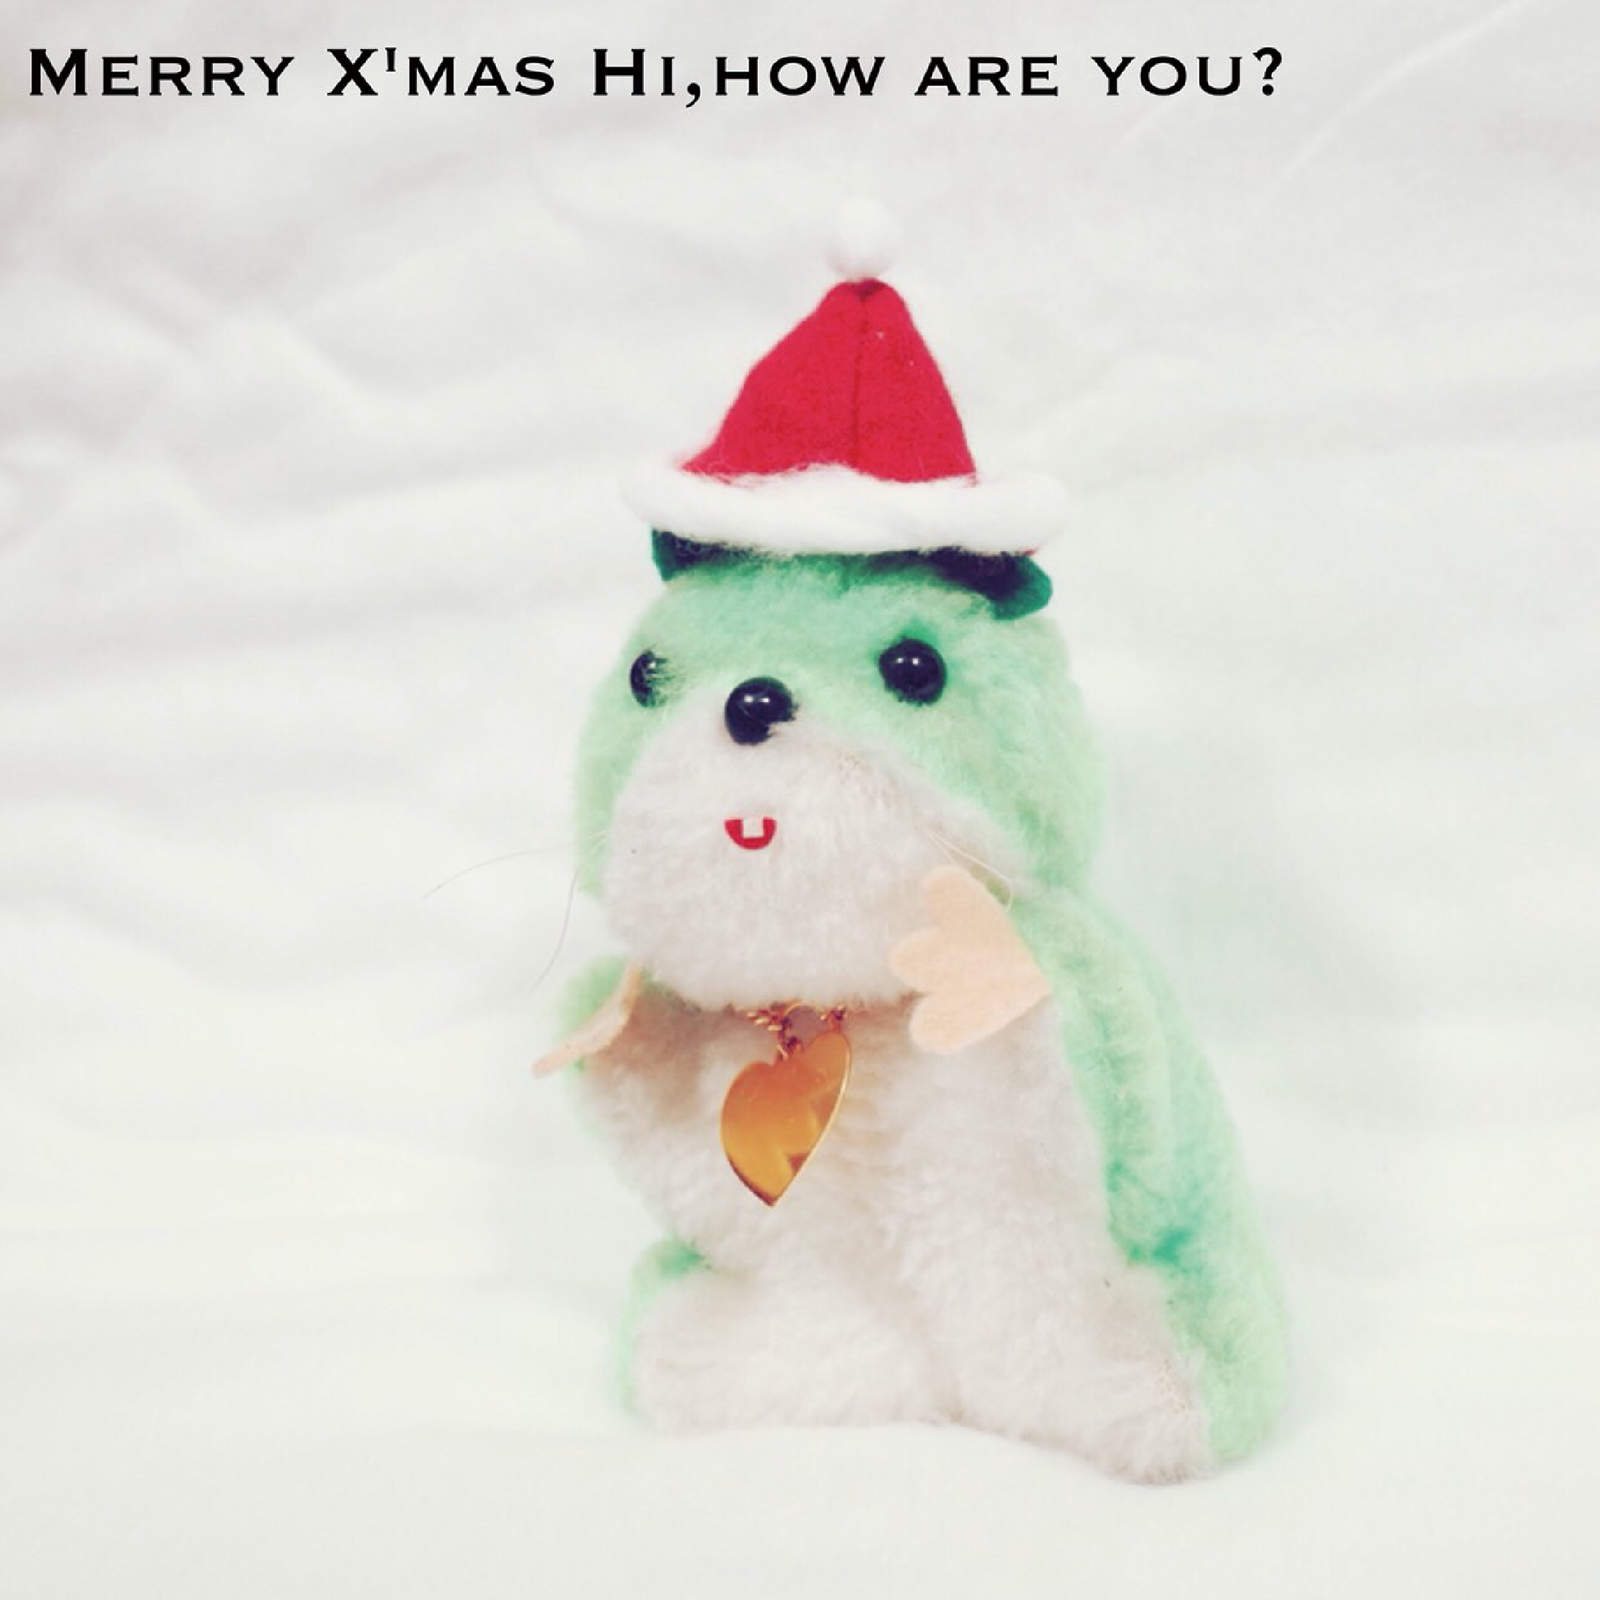 Hi,how are you? アナログ7inch『Merry Xmas,Hi,how are you?』の予約受付を開始しました。